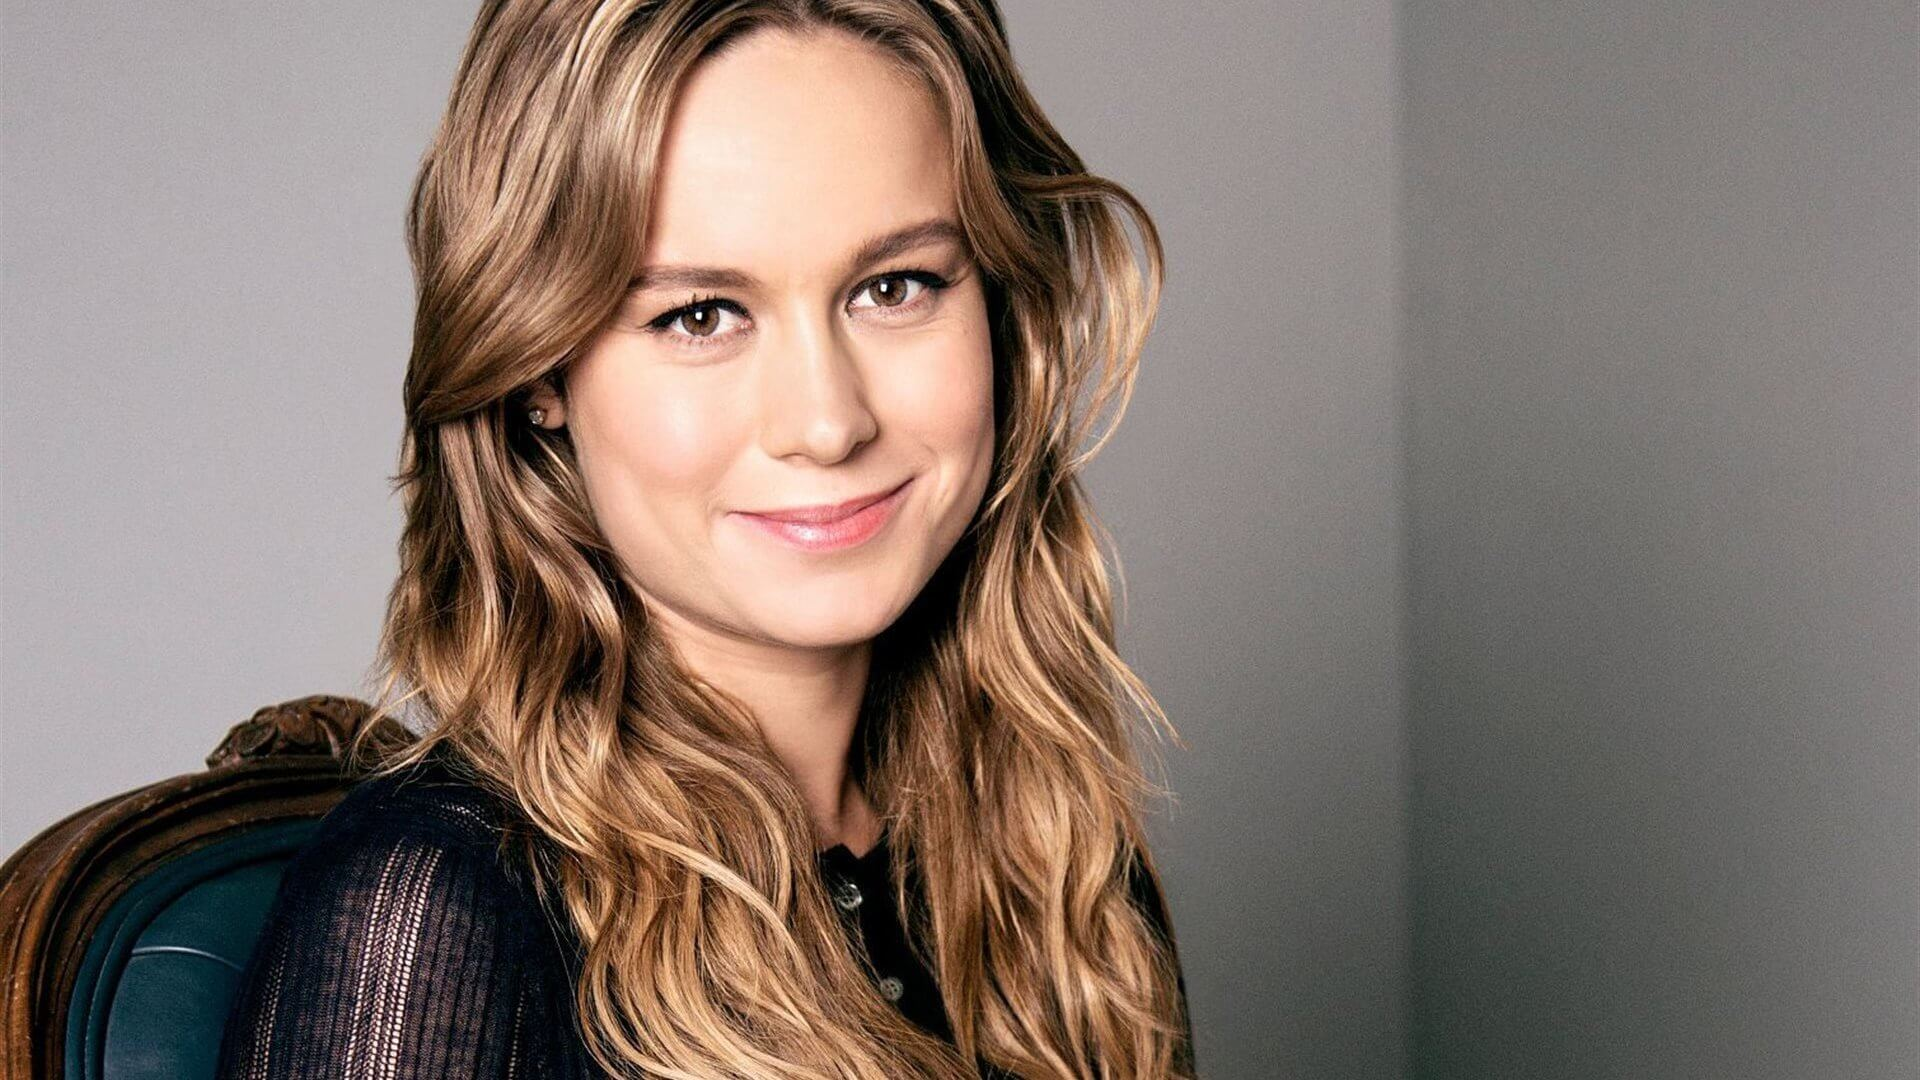 Brie Larson wants to play Samus Aran from Super Smash Bros. in movie